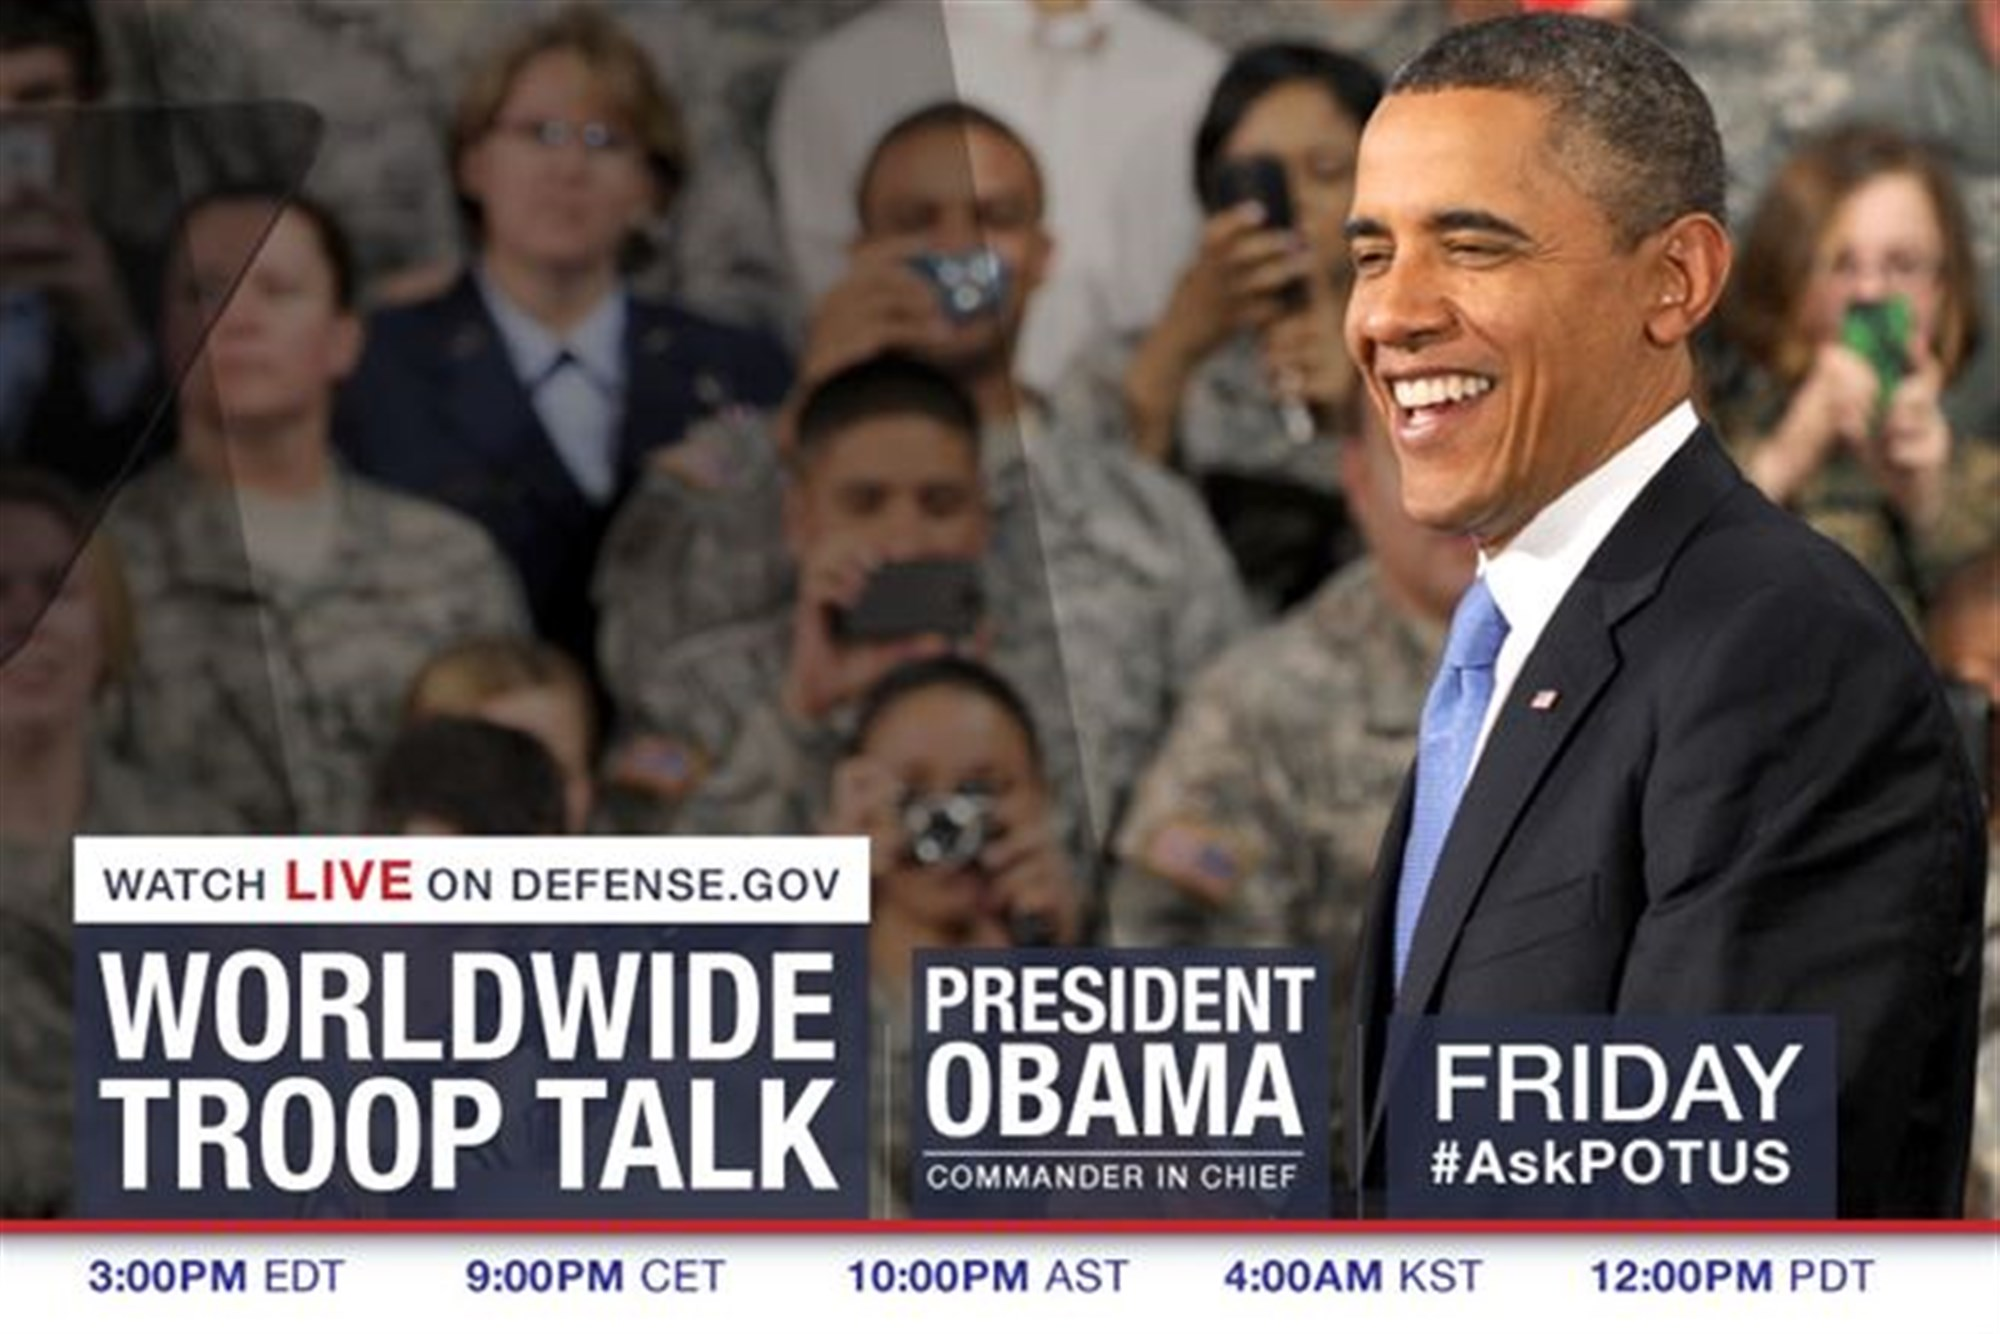 President Barack Obama is scheduled to talk with service members and answer questions during a worldwide troop talk Friday at 3 p.m. EDT.